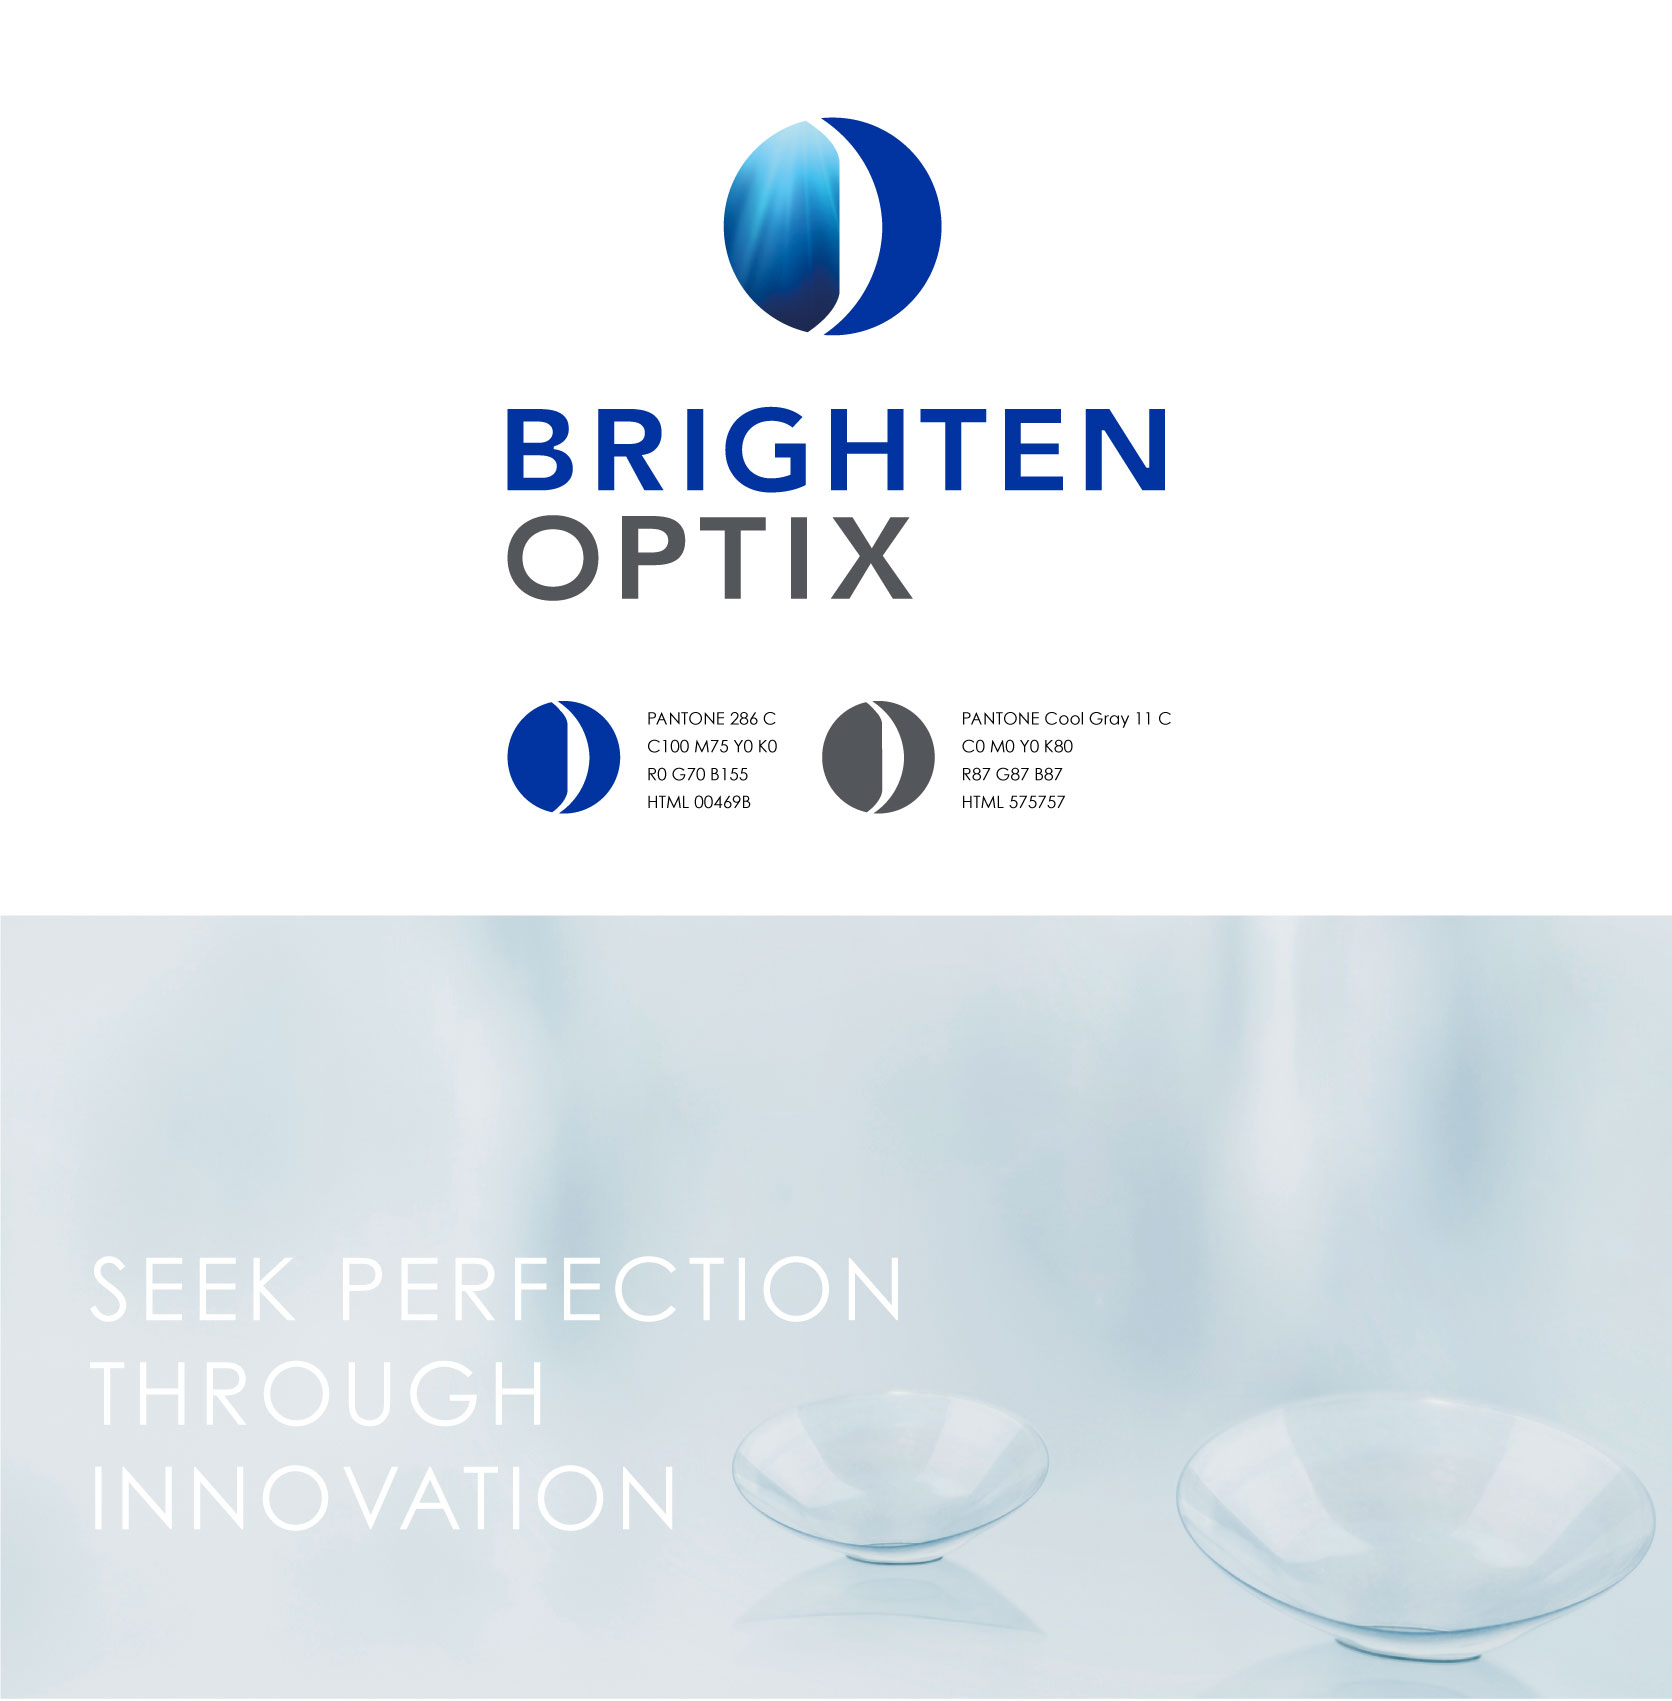 BRIGHTEN OPTIX brand design